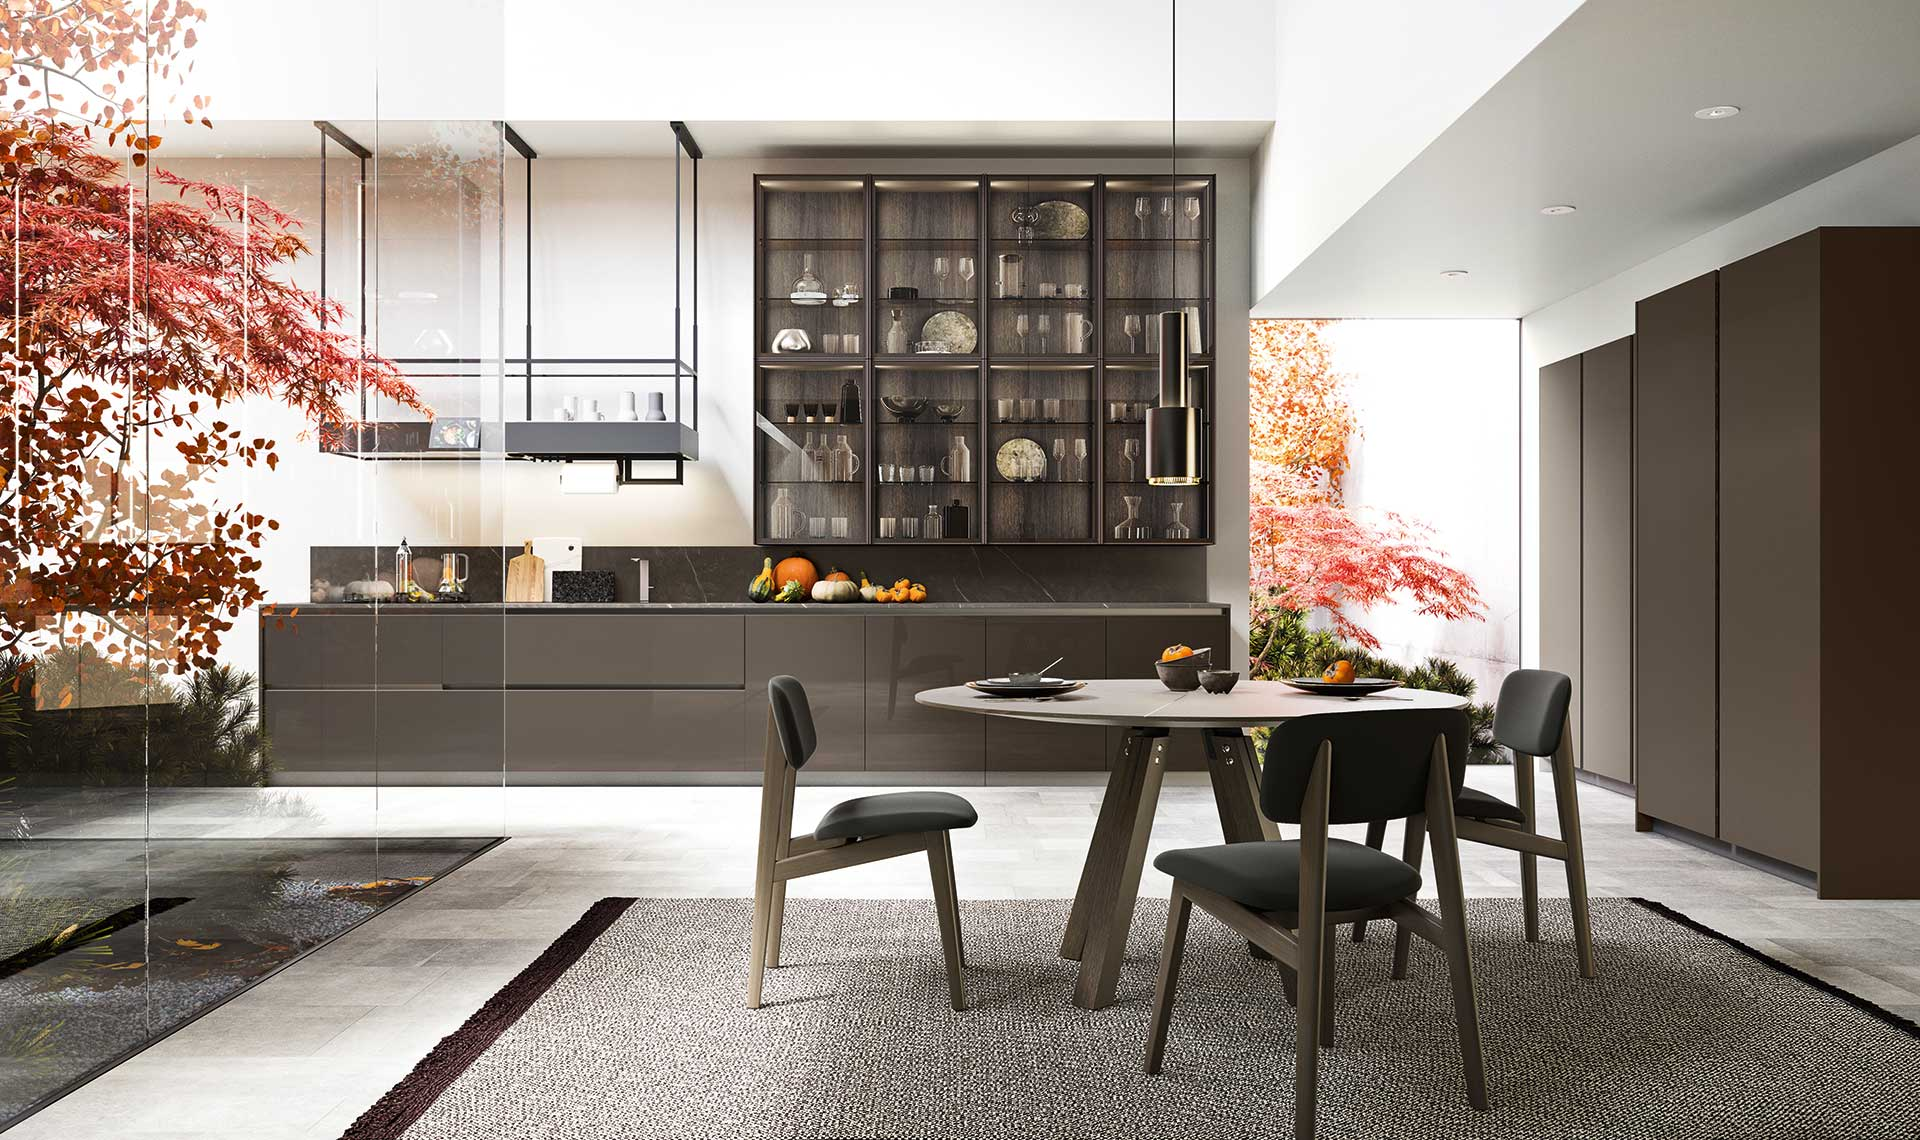 We've compiled 3 ideas for kitchen renovations that will be sure to guarantee an increase on your property's price tag.